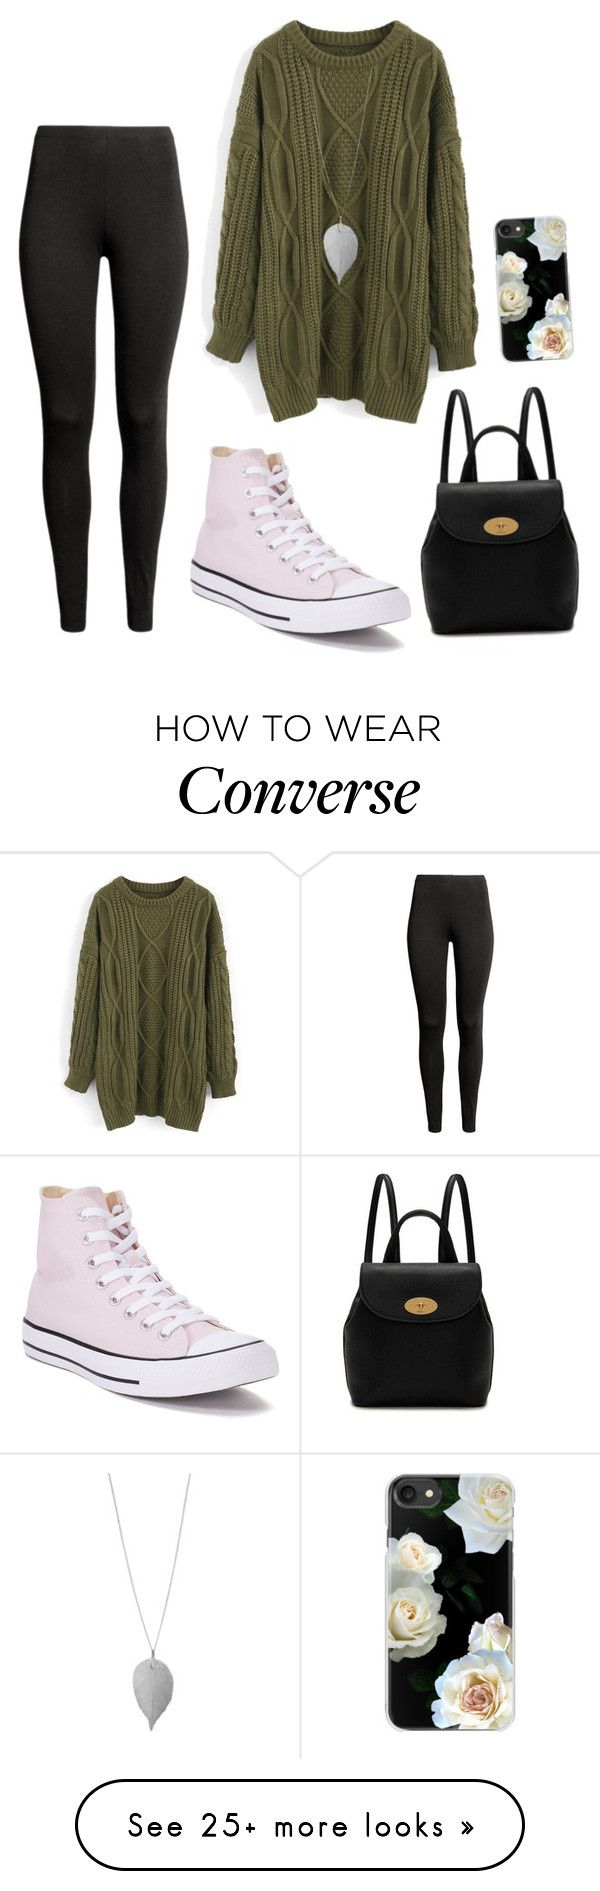 """Coffee date with friends"" by whitneanea on Polyvore featuring Chicwish, Converse, Humble Chic, Mulberry, Casetify and CoffeeDate"